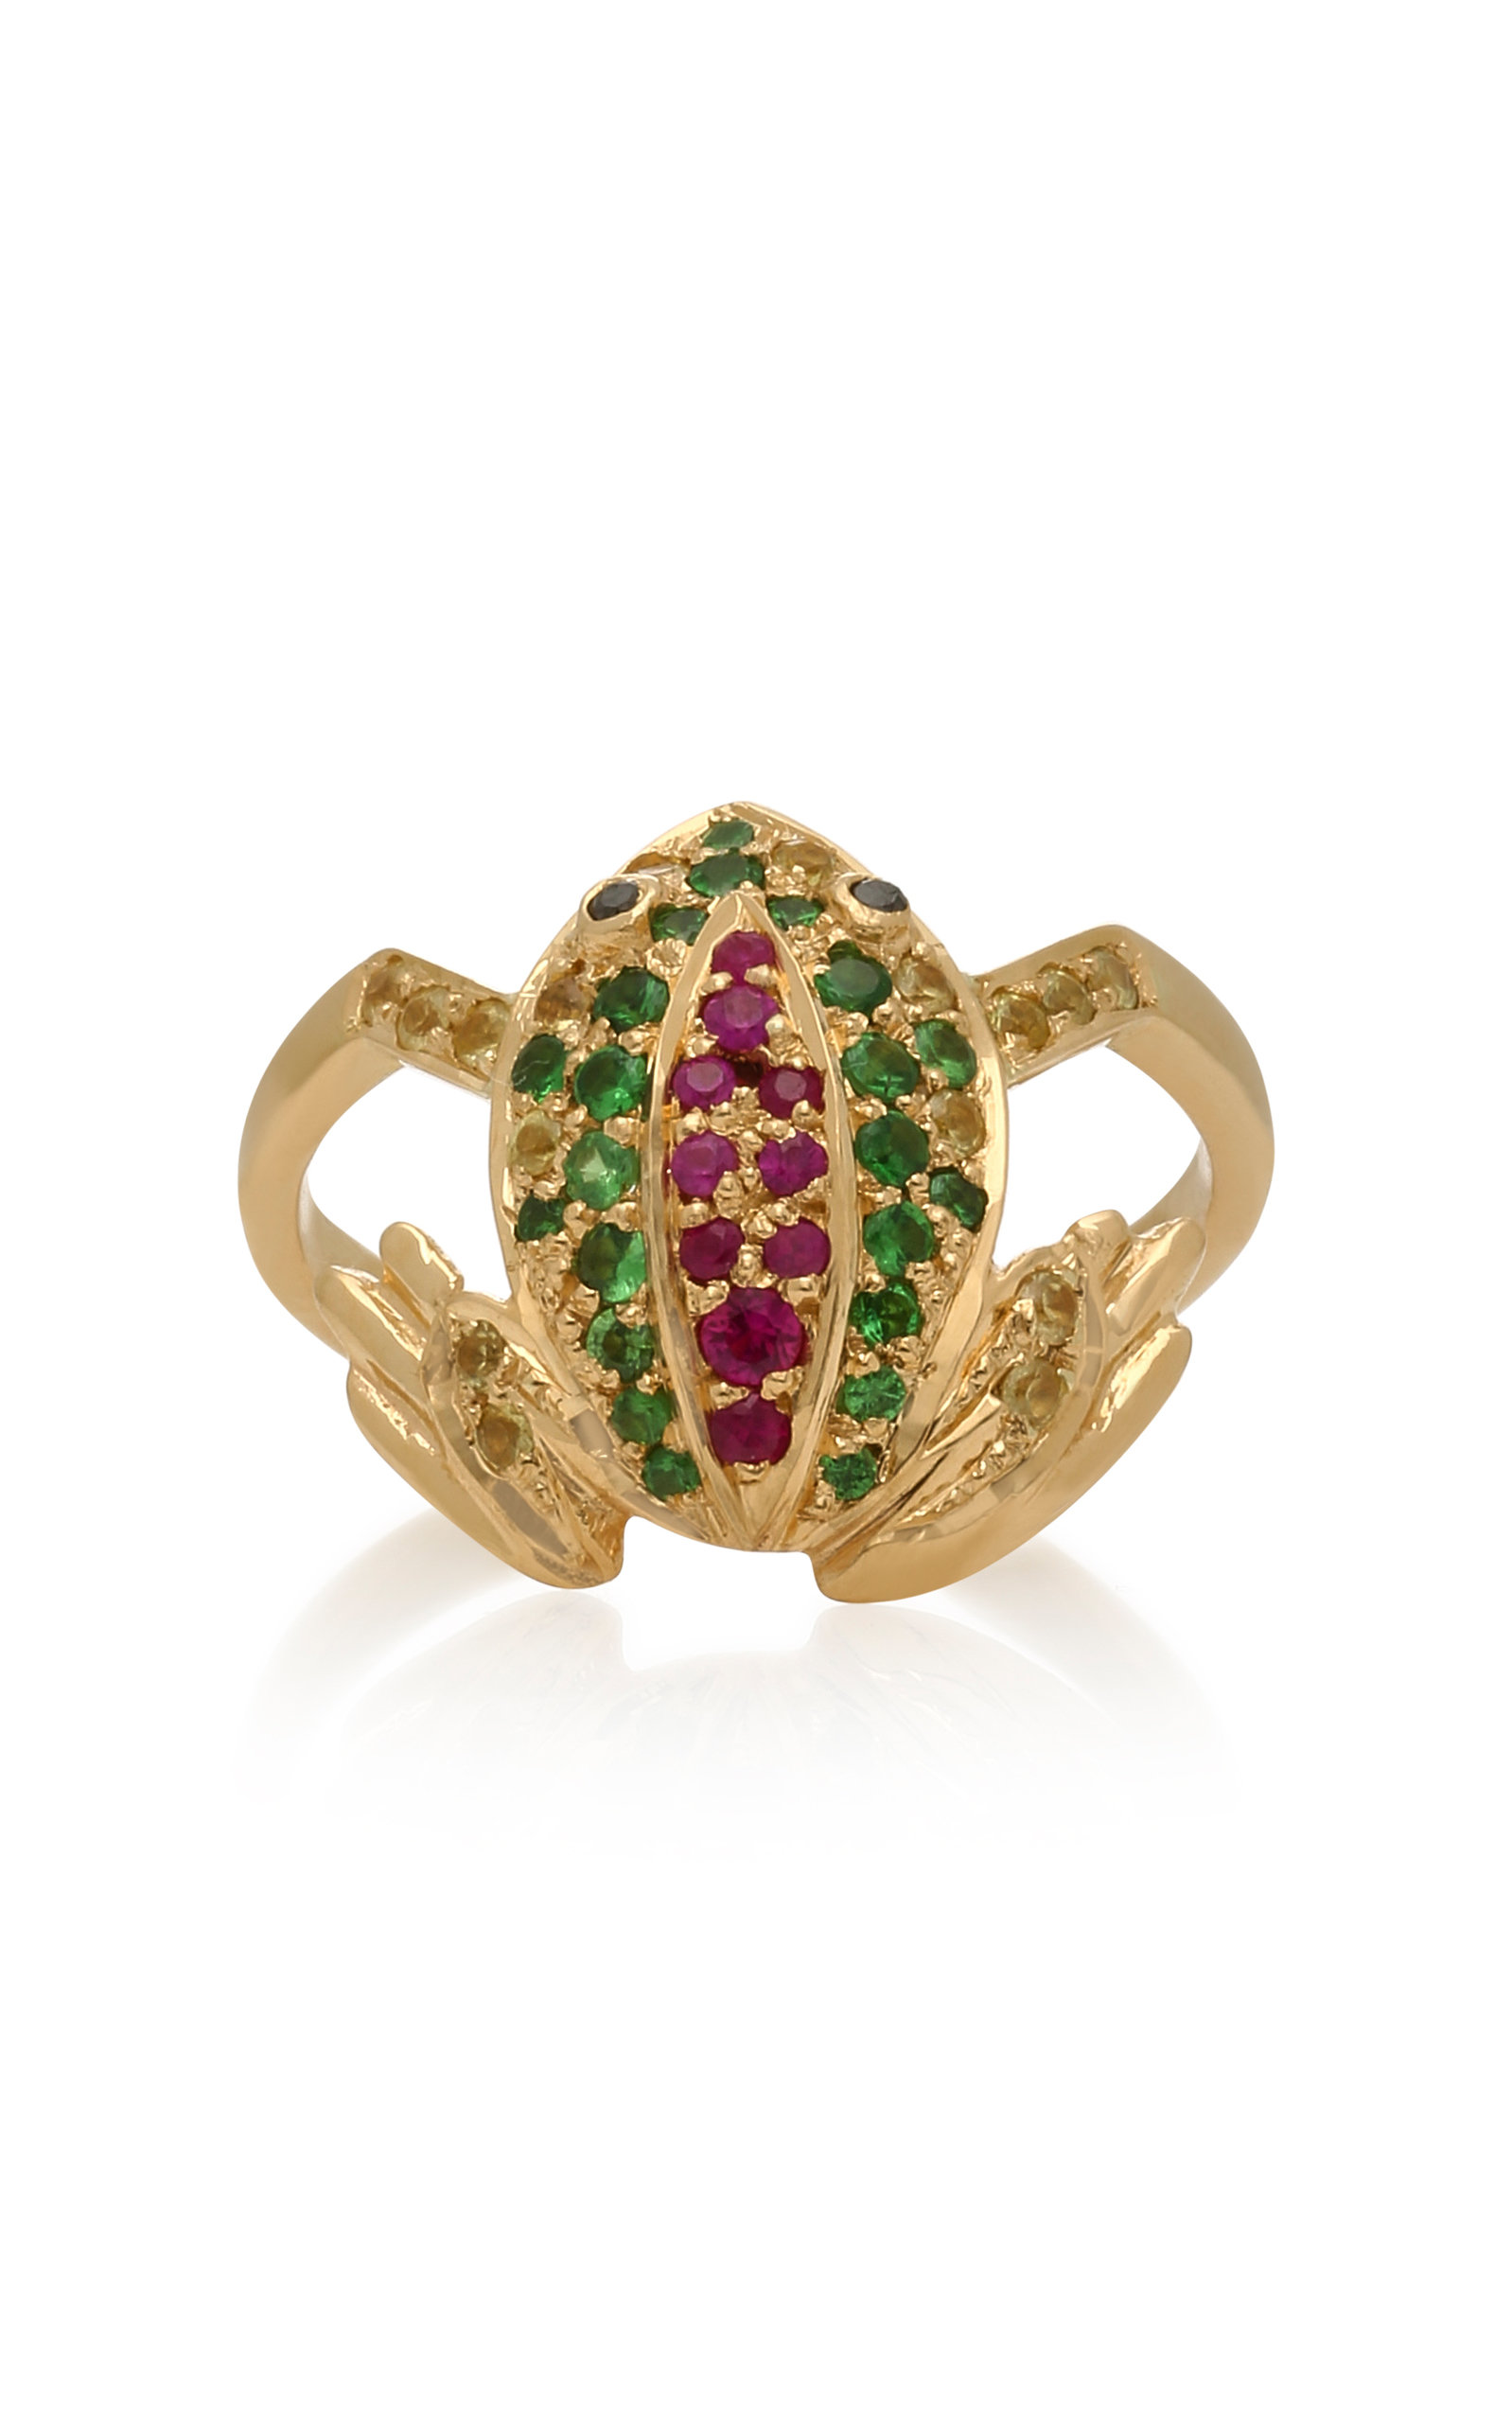 DONNA HOURANI FROG 18K GOLD DIAMOND AND SAPPHIRE RING